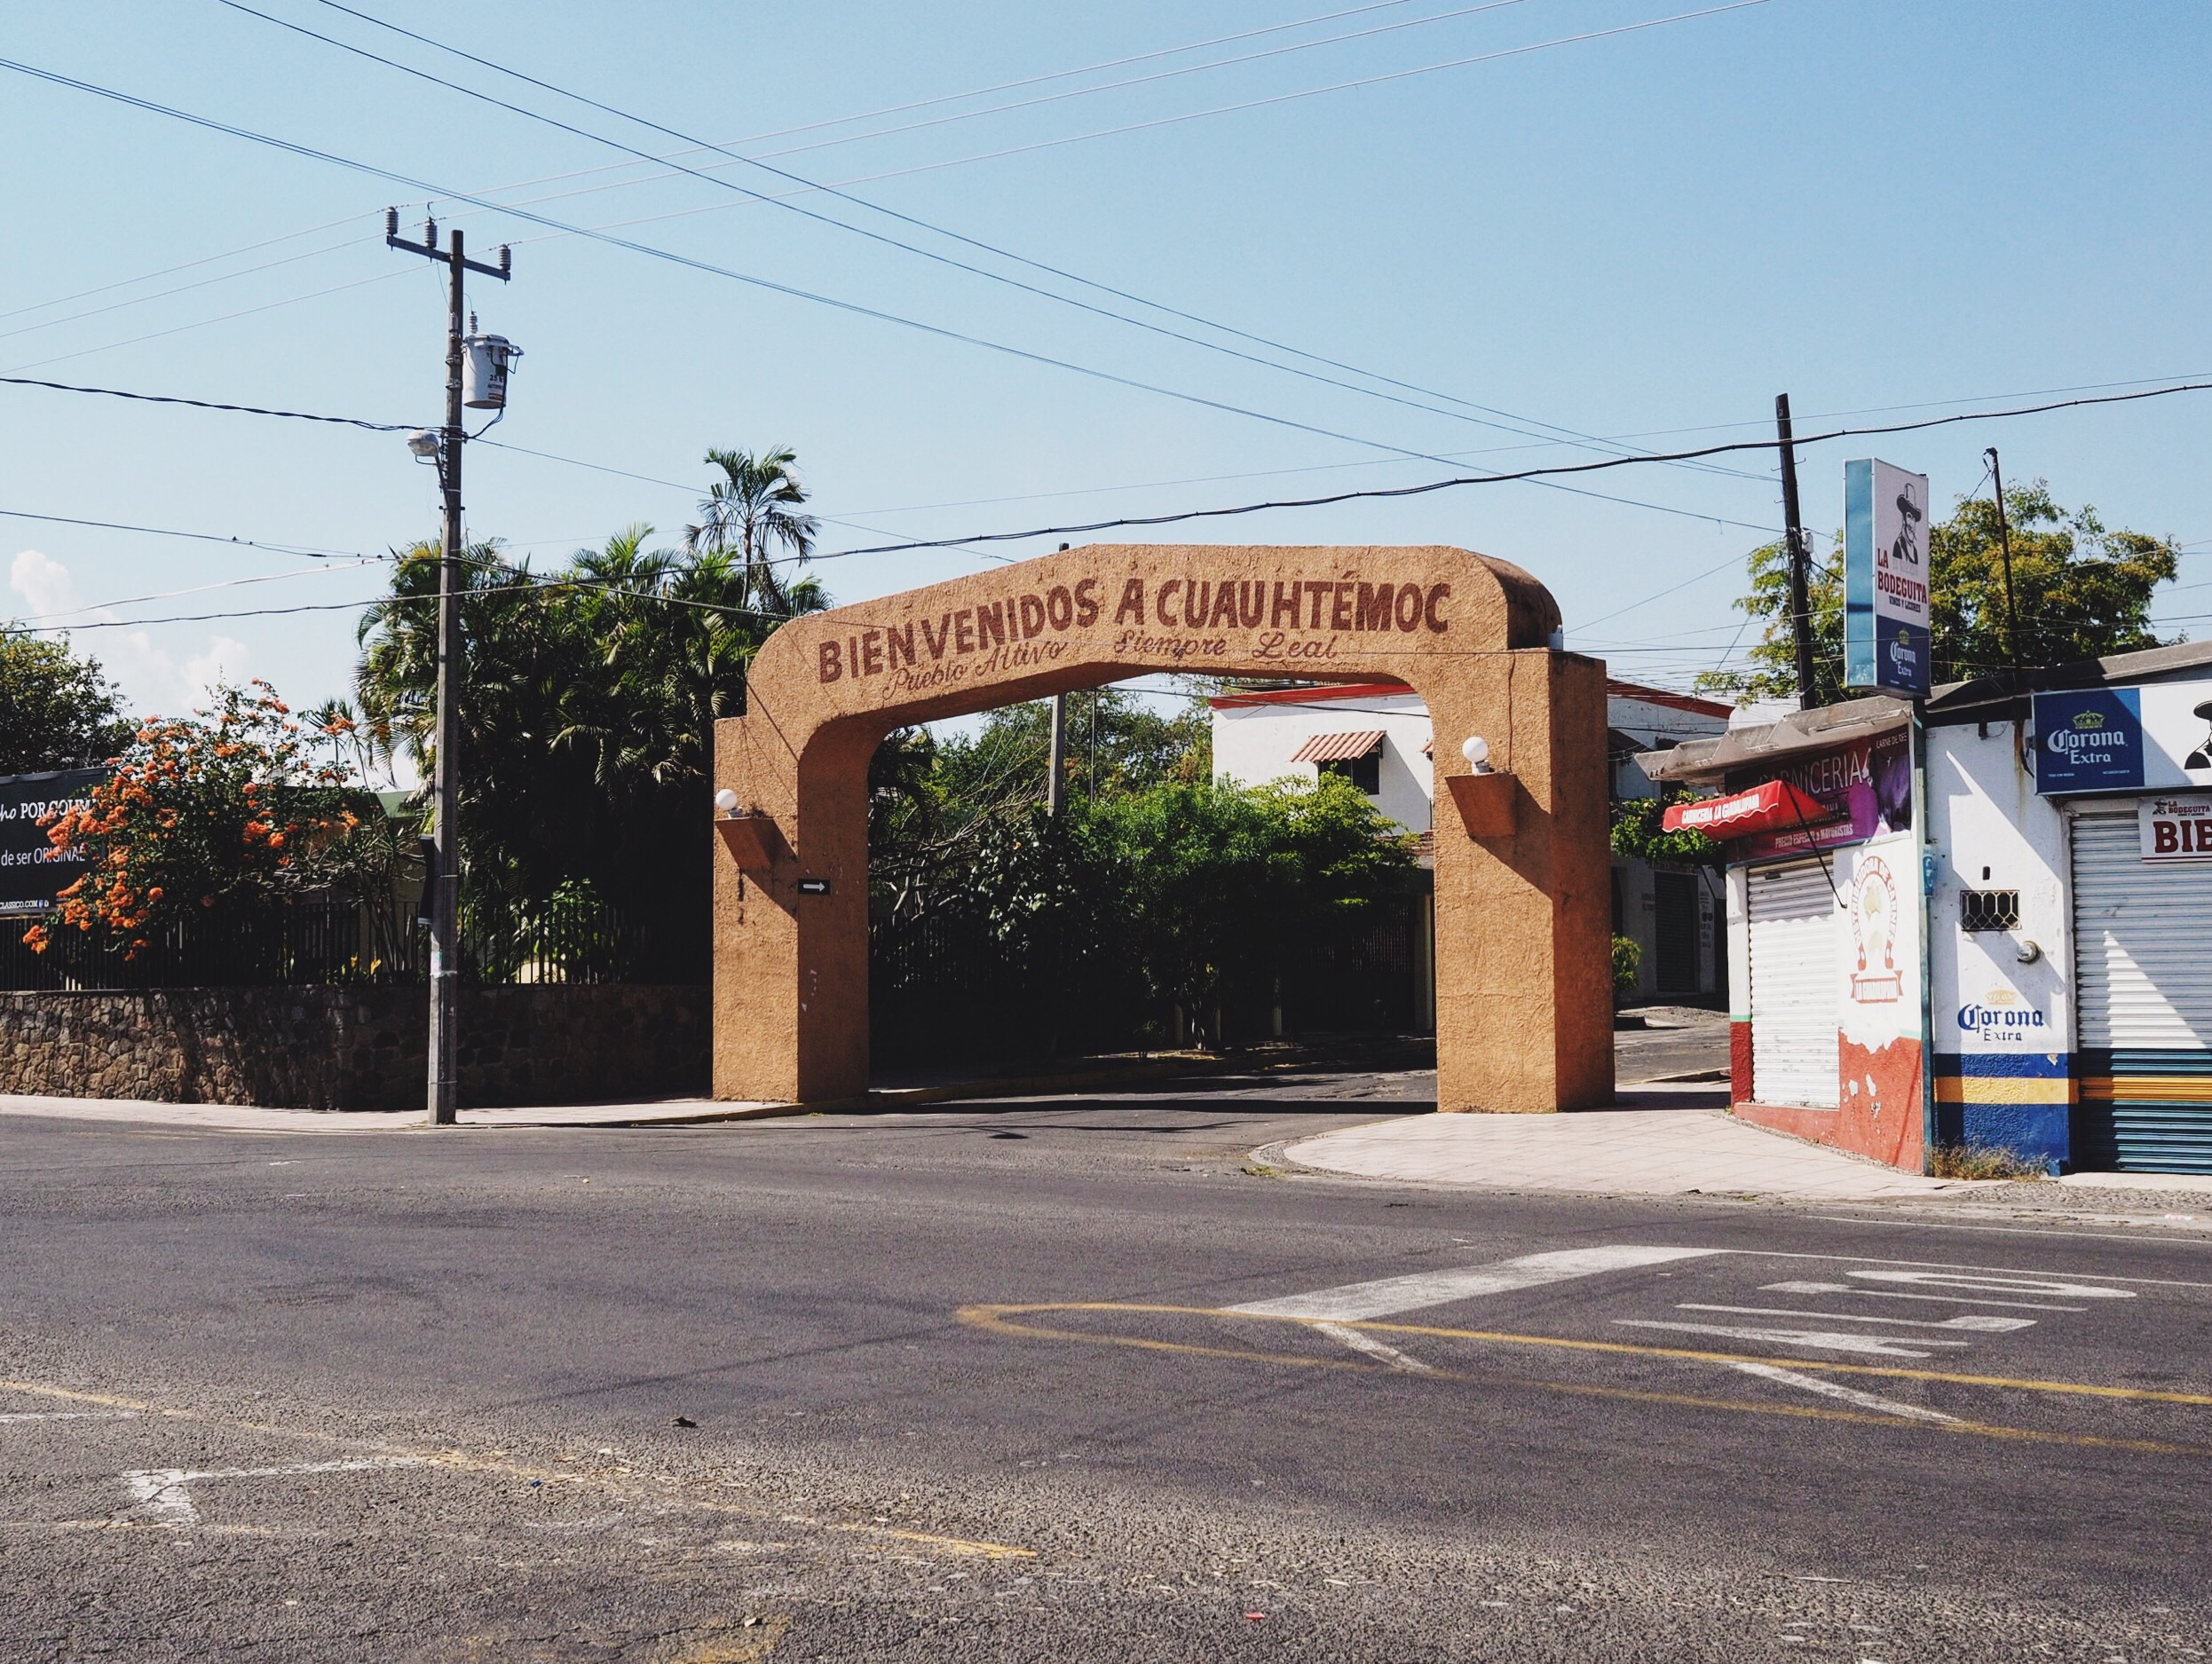 Passing through the small town of Cuauhtemoc